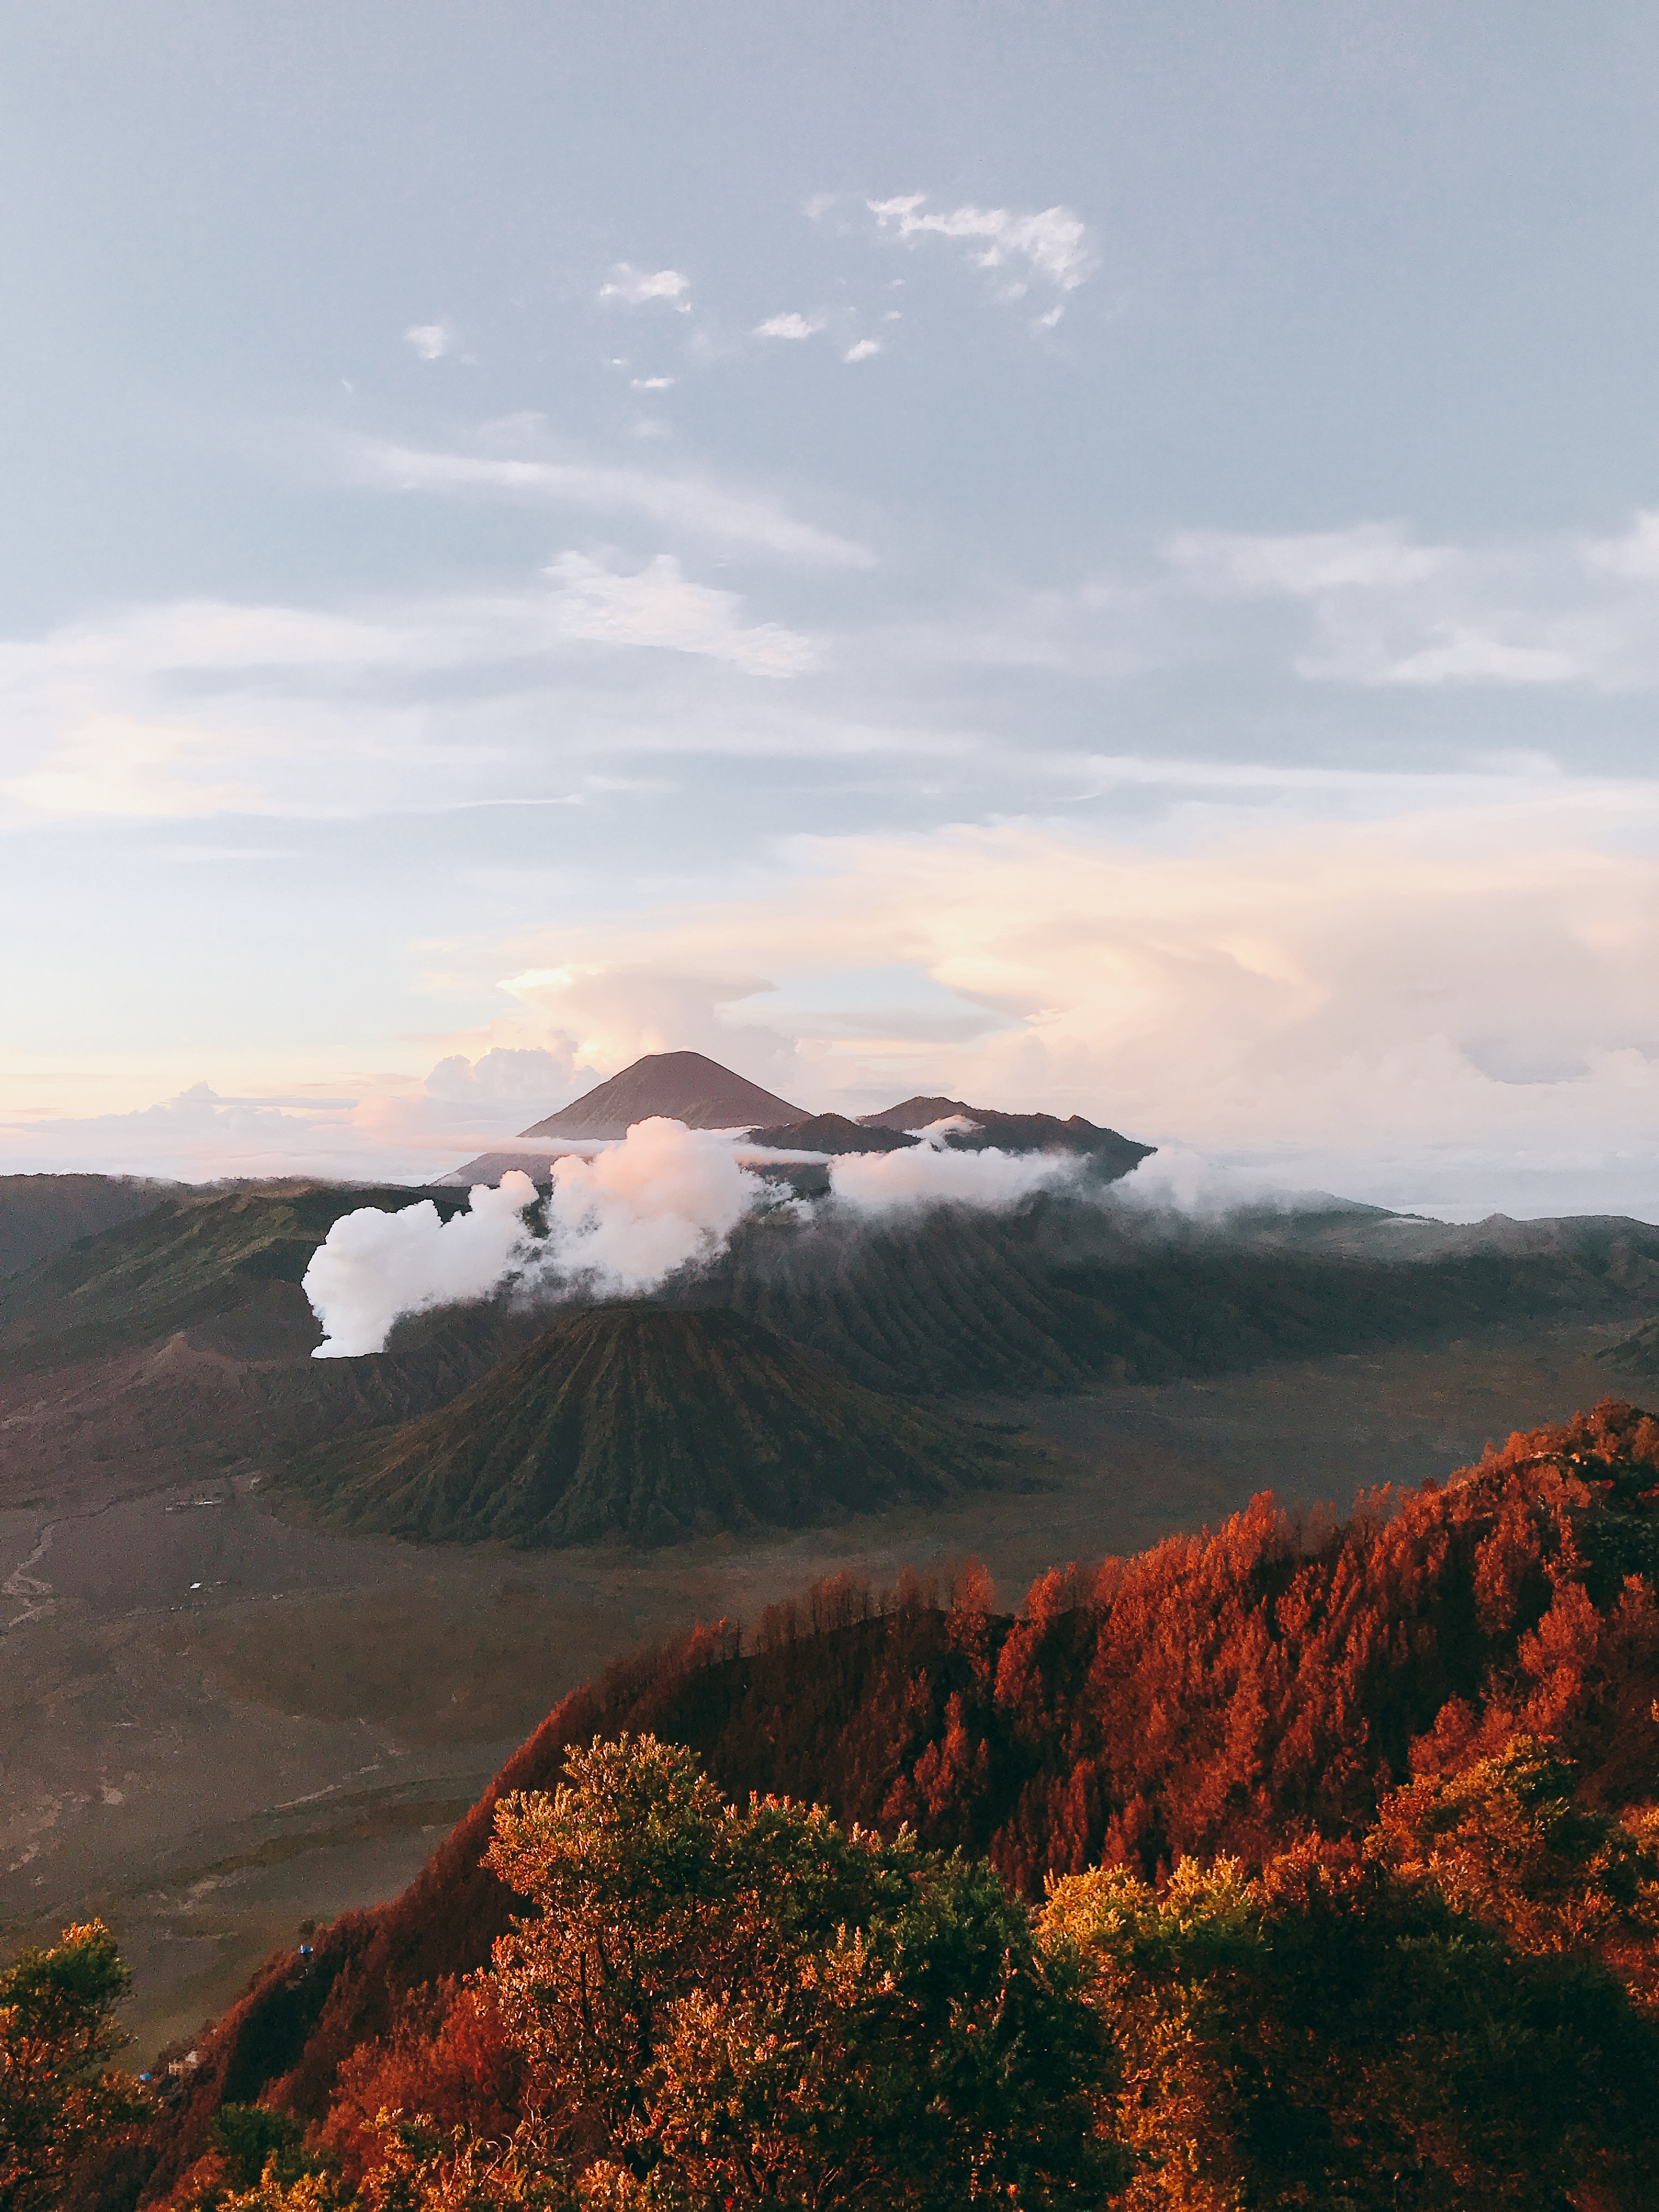 Den Indonesia, cham chan toi mieng nui lua Bromo hinh anh 54